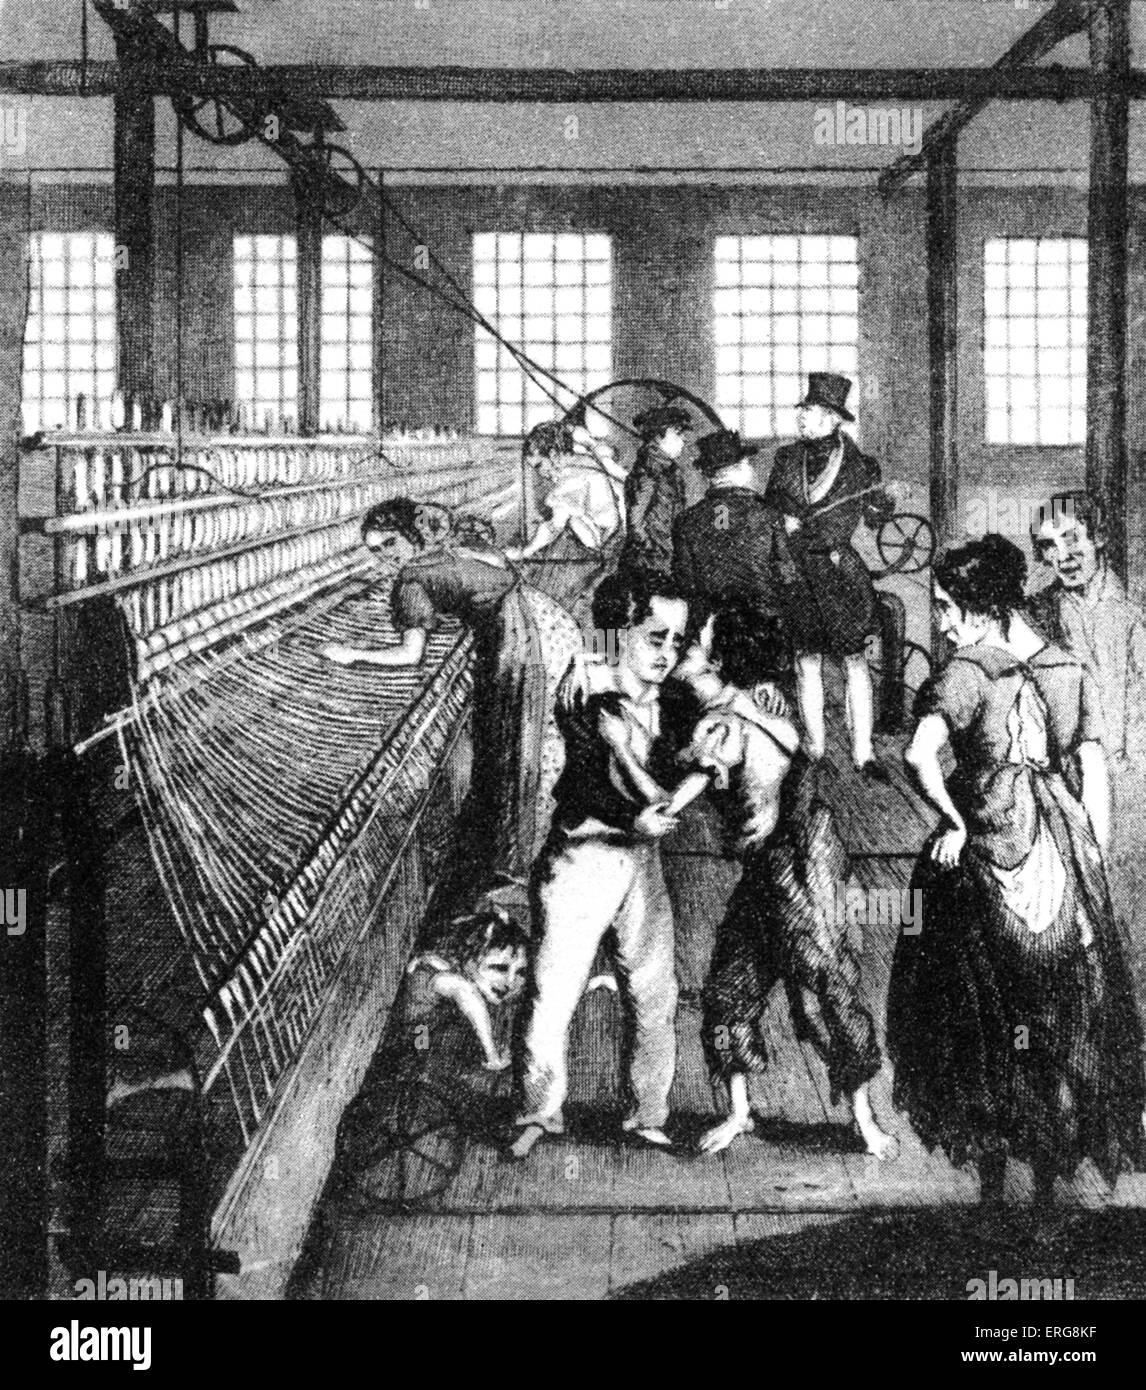 19th century factory workers